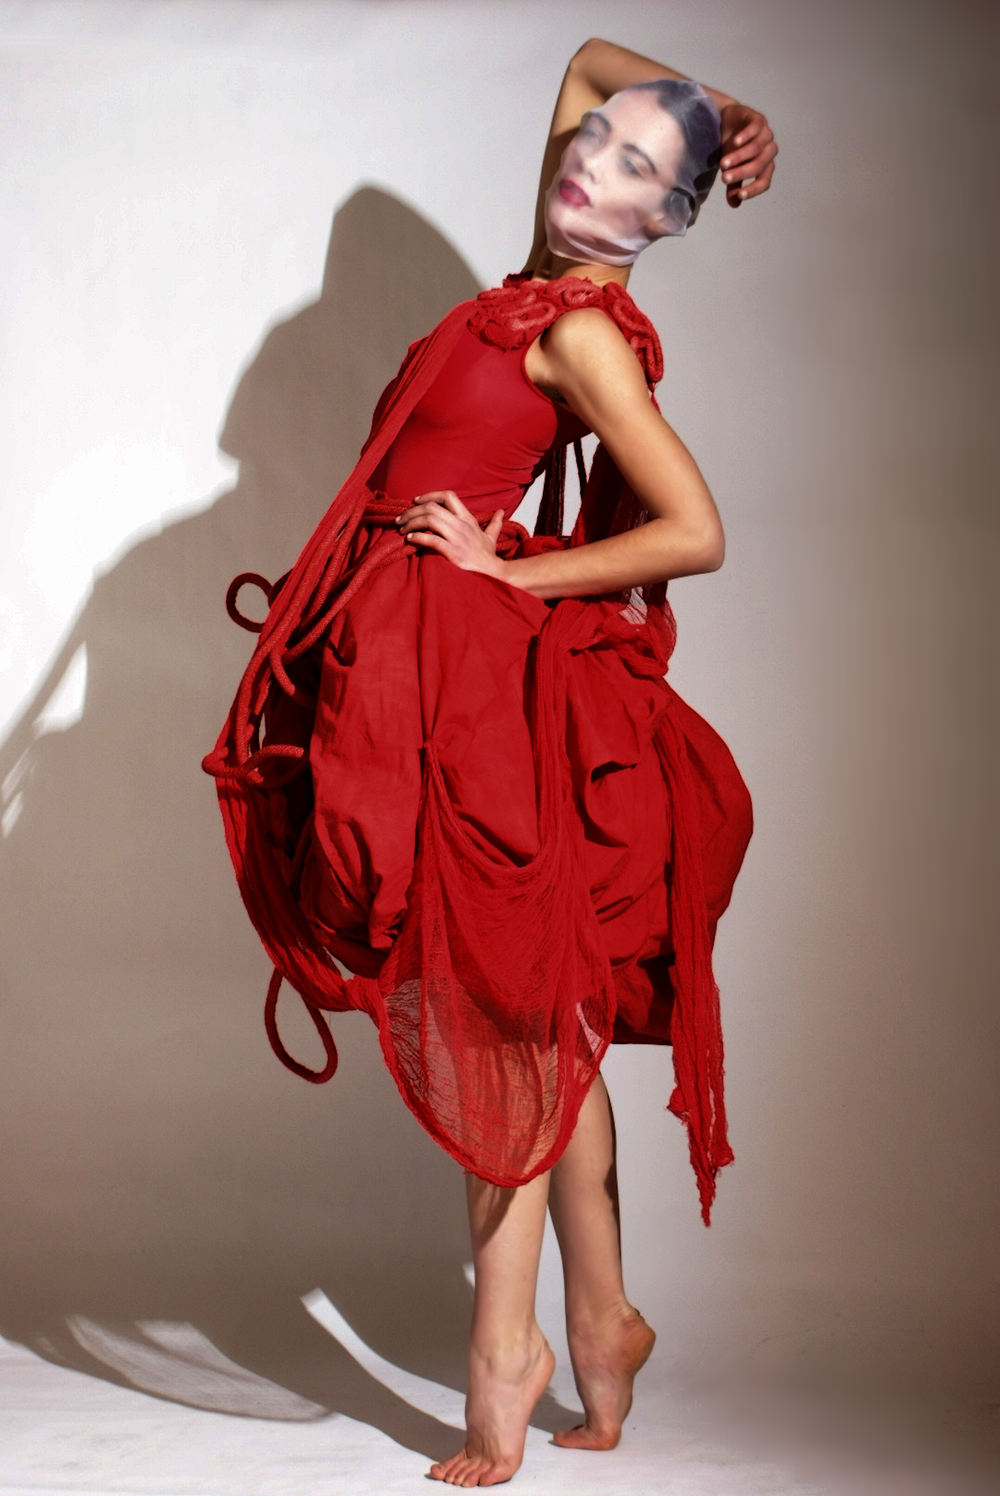 ALT=%22SCHIZOPHRENIC-EXPERIENCE-COUTURE-RED-GOWN-6%22.jpg